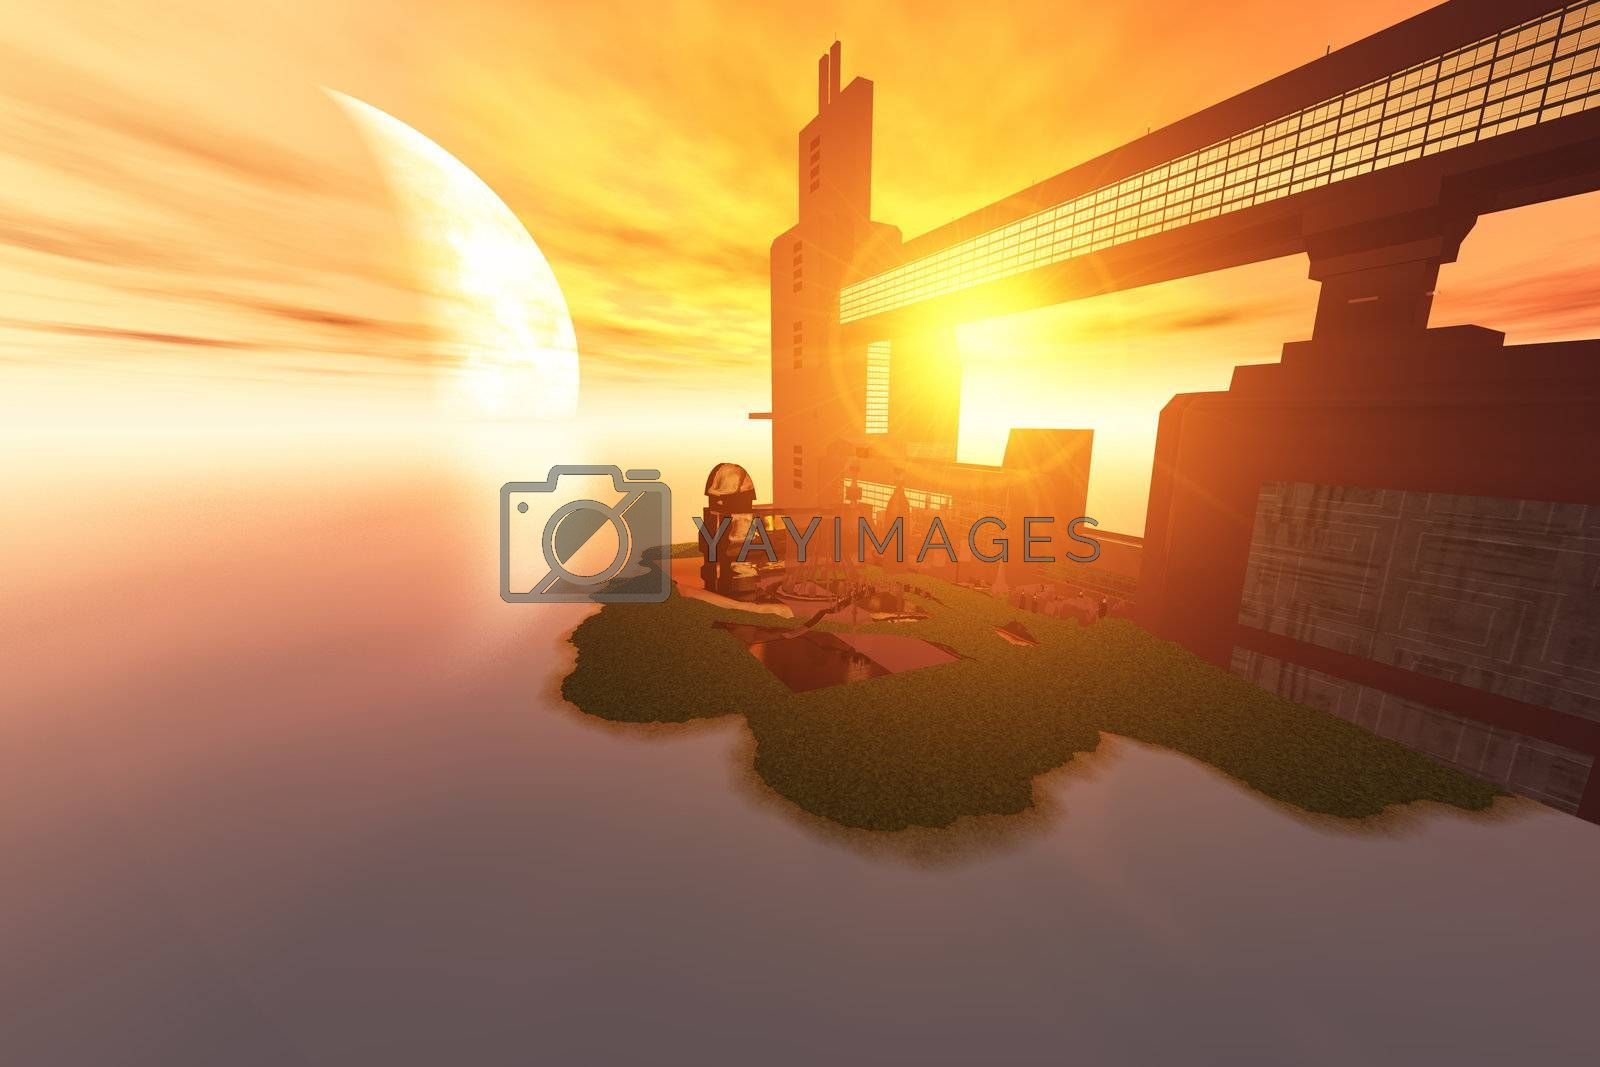 Royalty free image of IMAGINE by Catmando